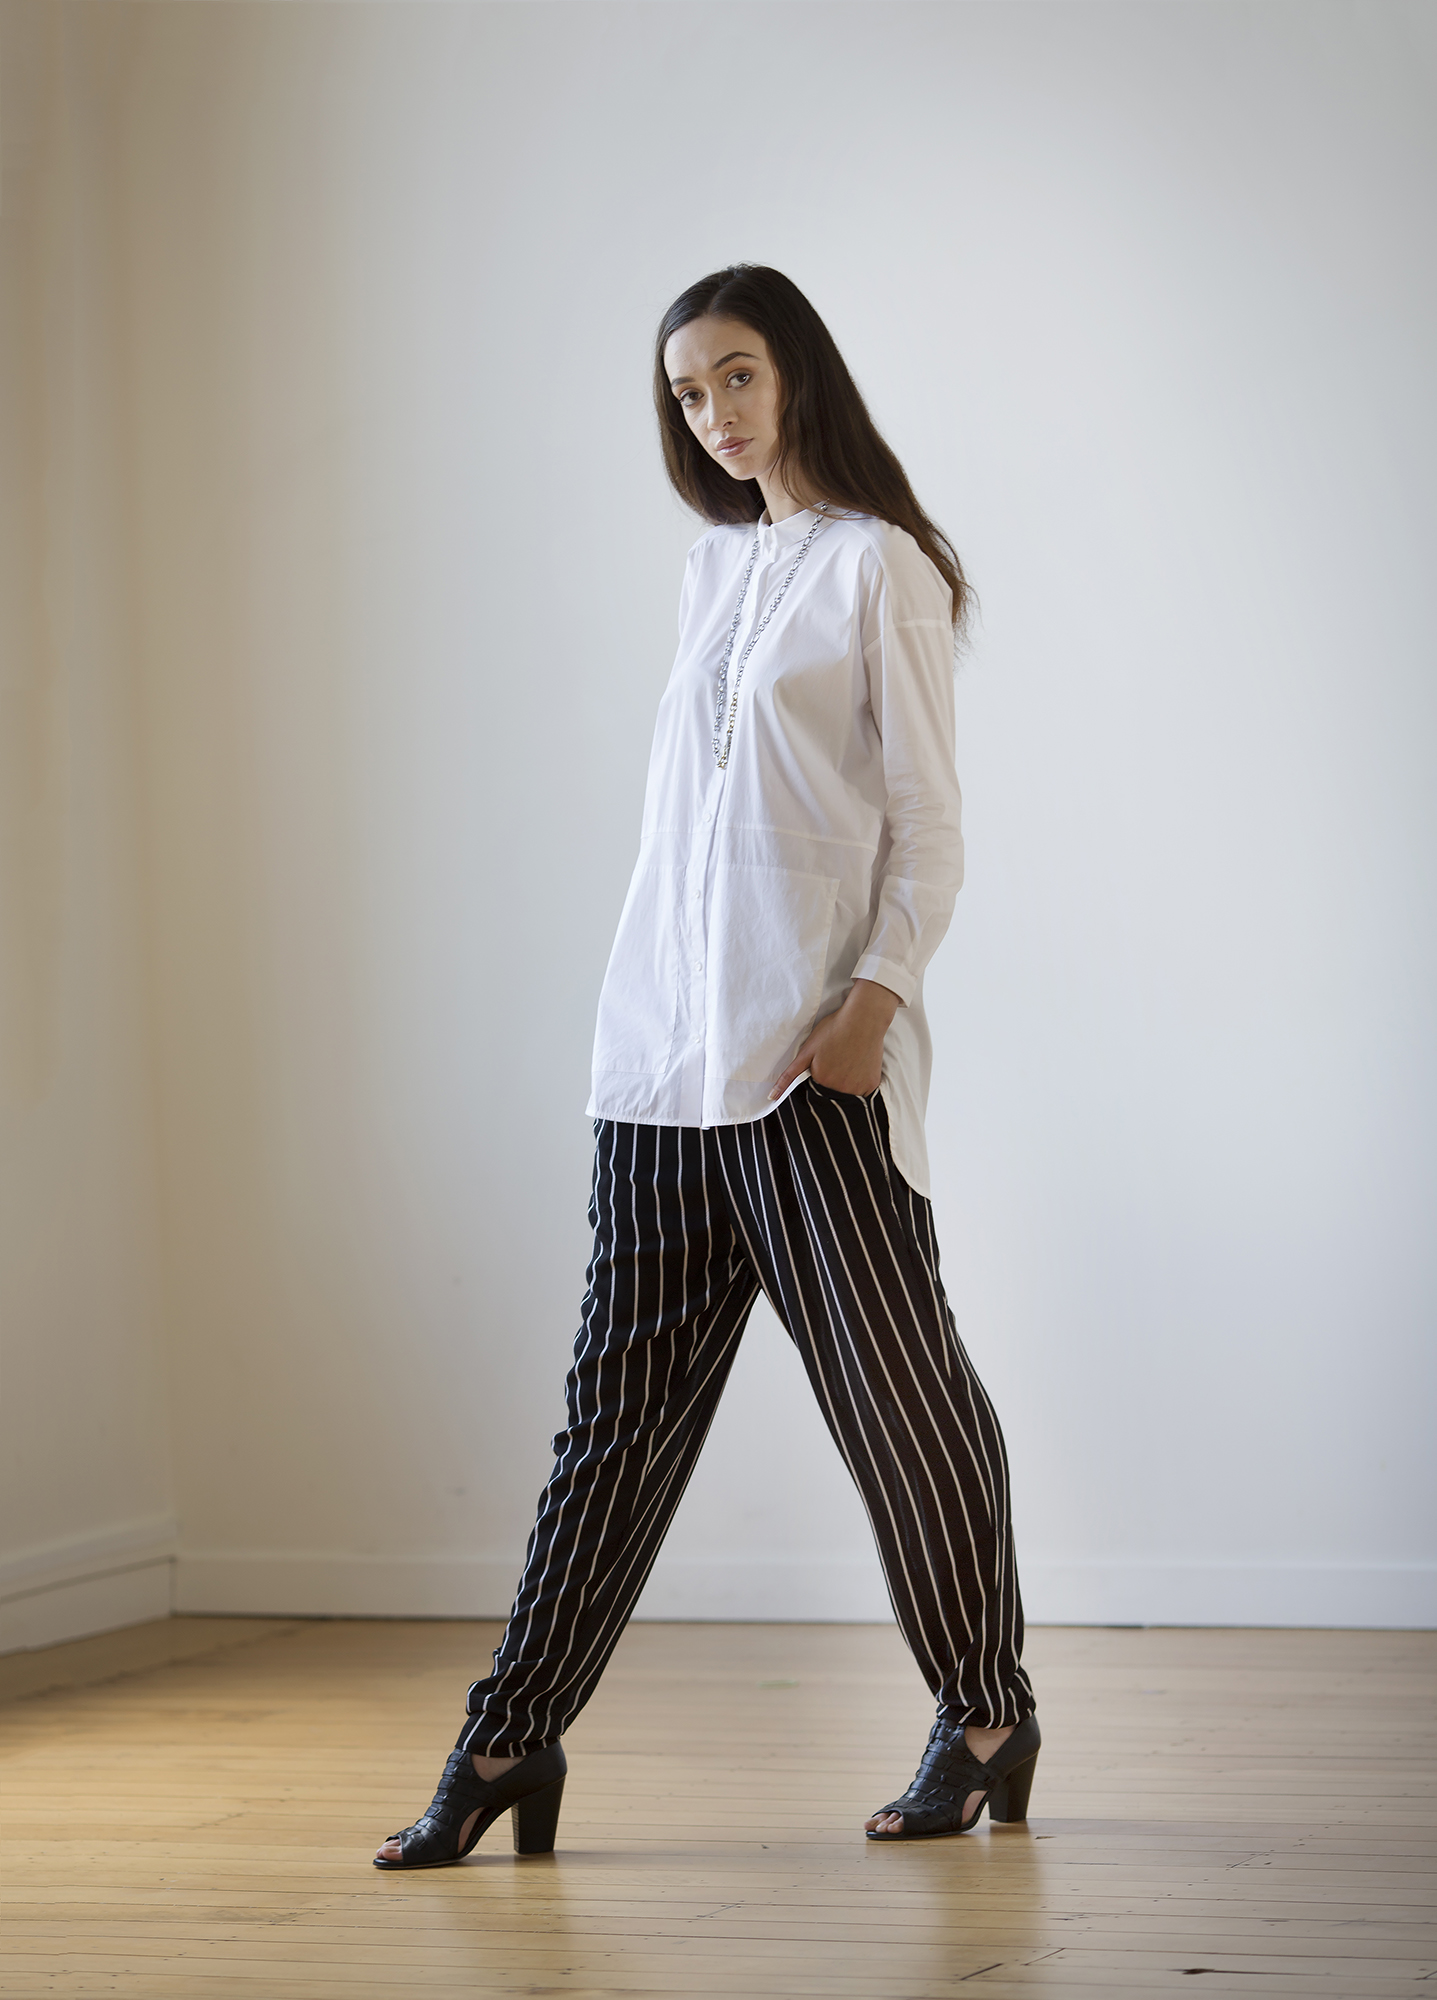 Trousers from Beetees, shirt, shoes and jewellery from Shine.